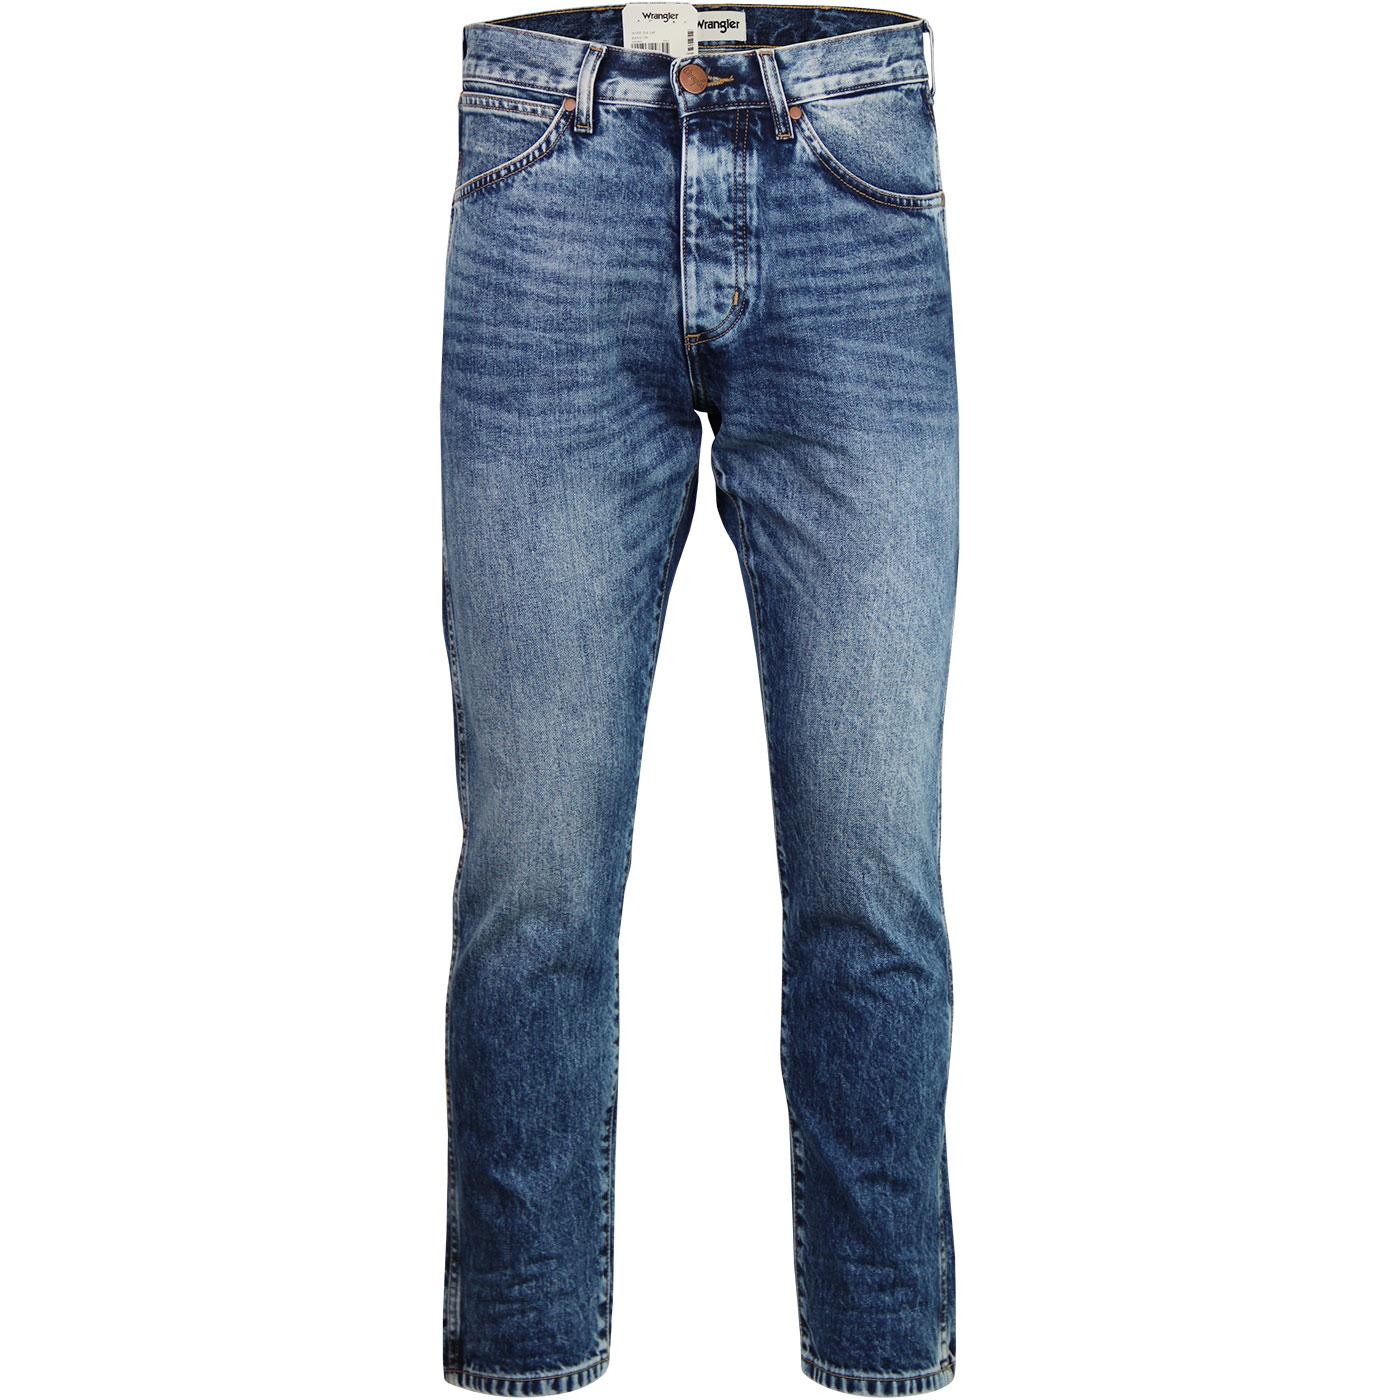 Slider WRANGLER 70s Super Stonewash Jeans BANG ON